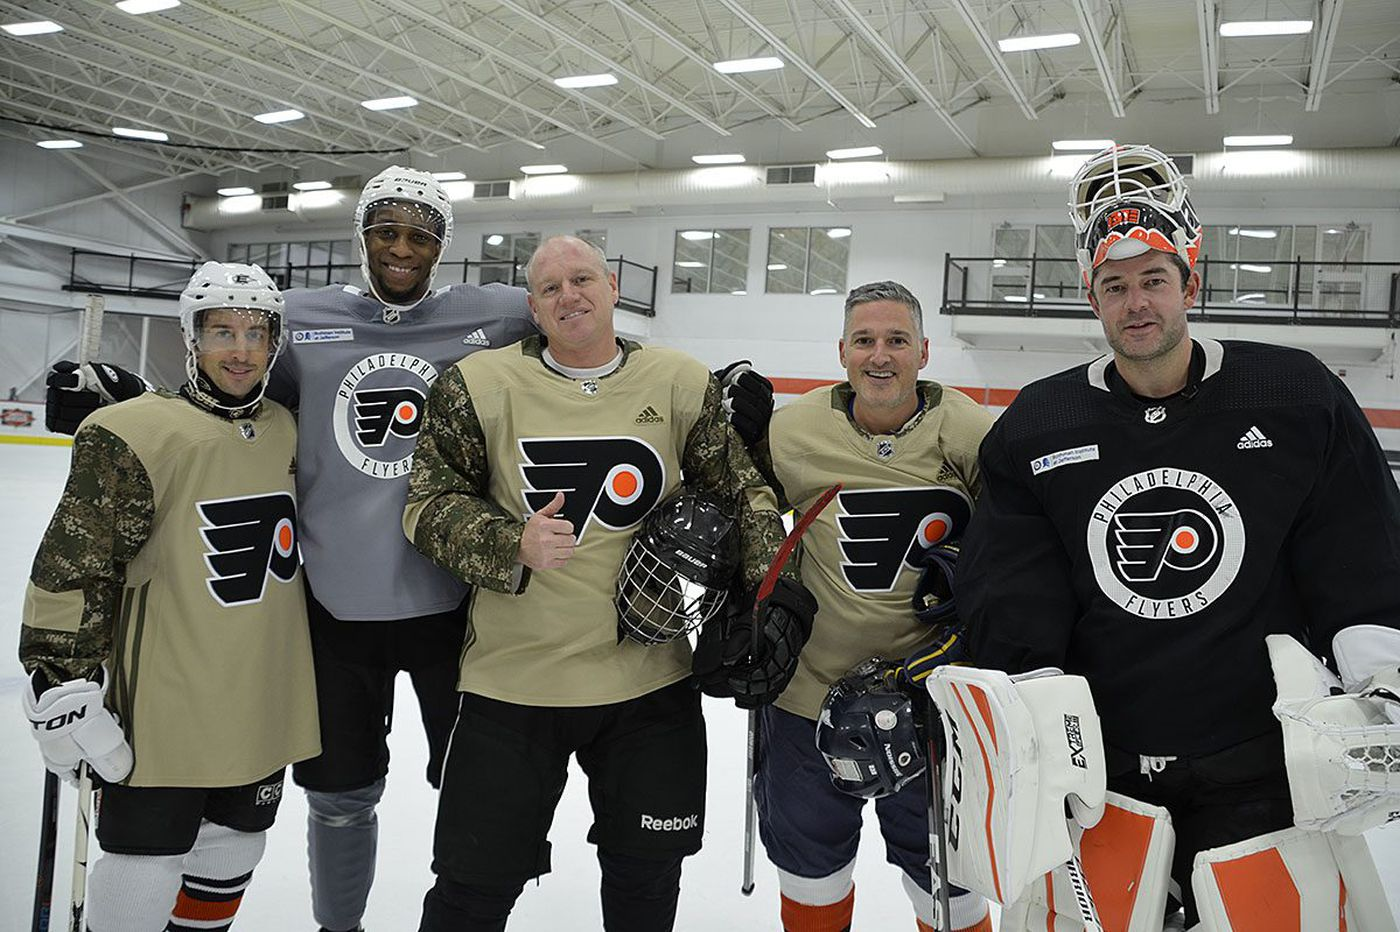 'They're the heroes of this country': Flyers host clinic for members of the Air Force